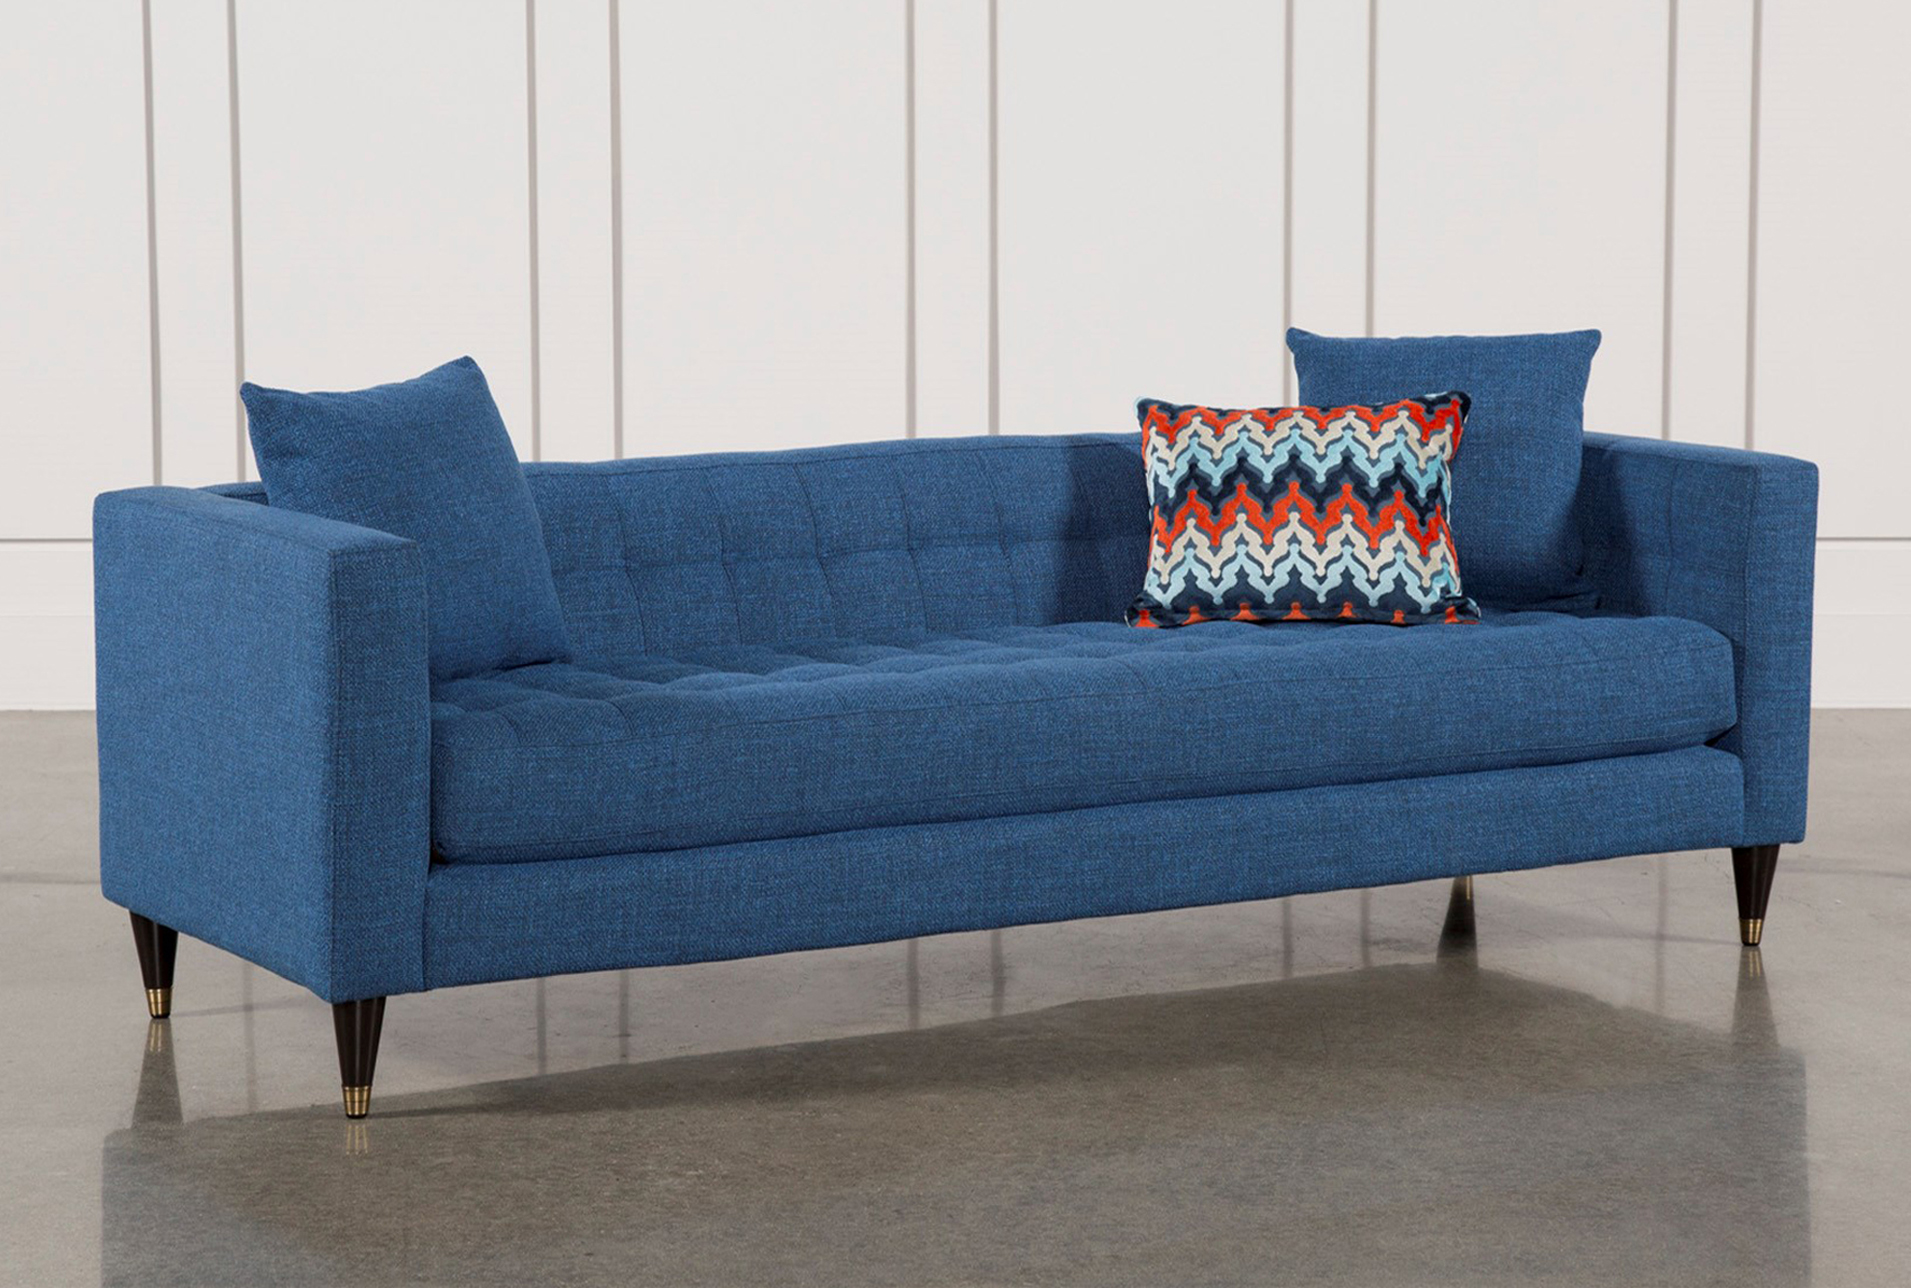 Tate Estate Sofa (Qty: 1) Has Been Successfully Added To Your Cart.